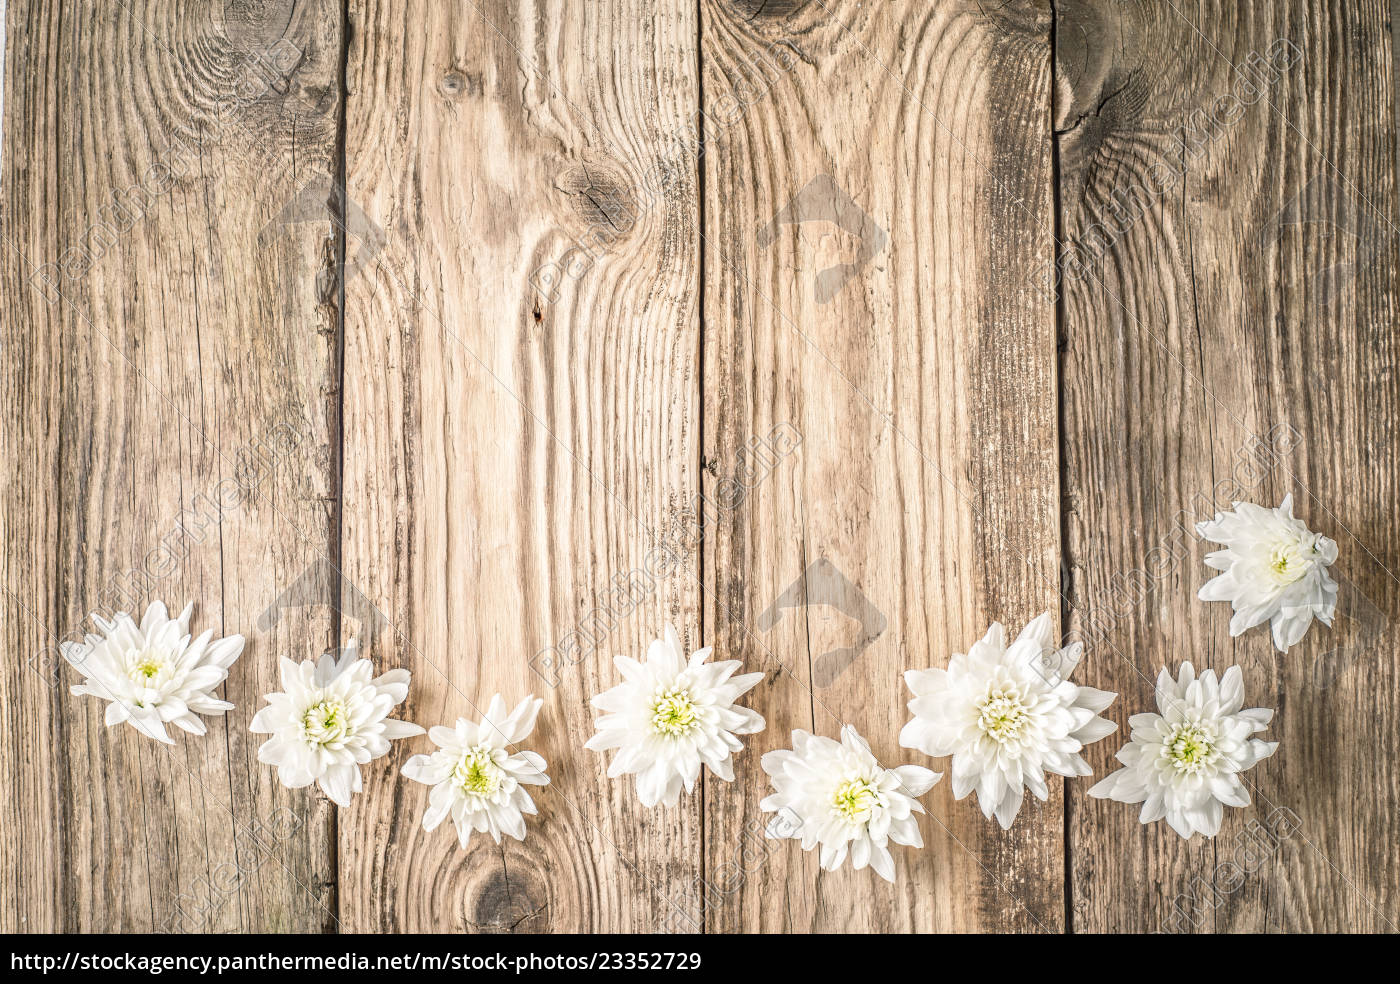 Royalty Free Image 23352729 White Flowers On The Wooden Background Top View